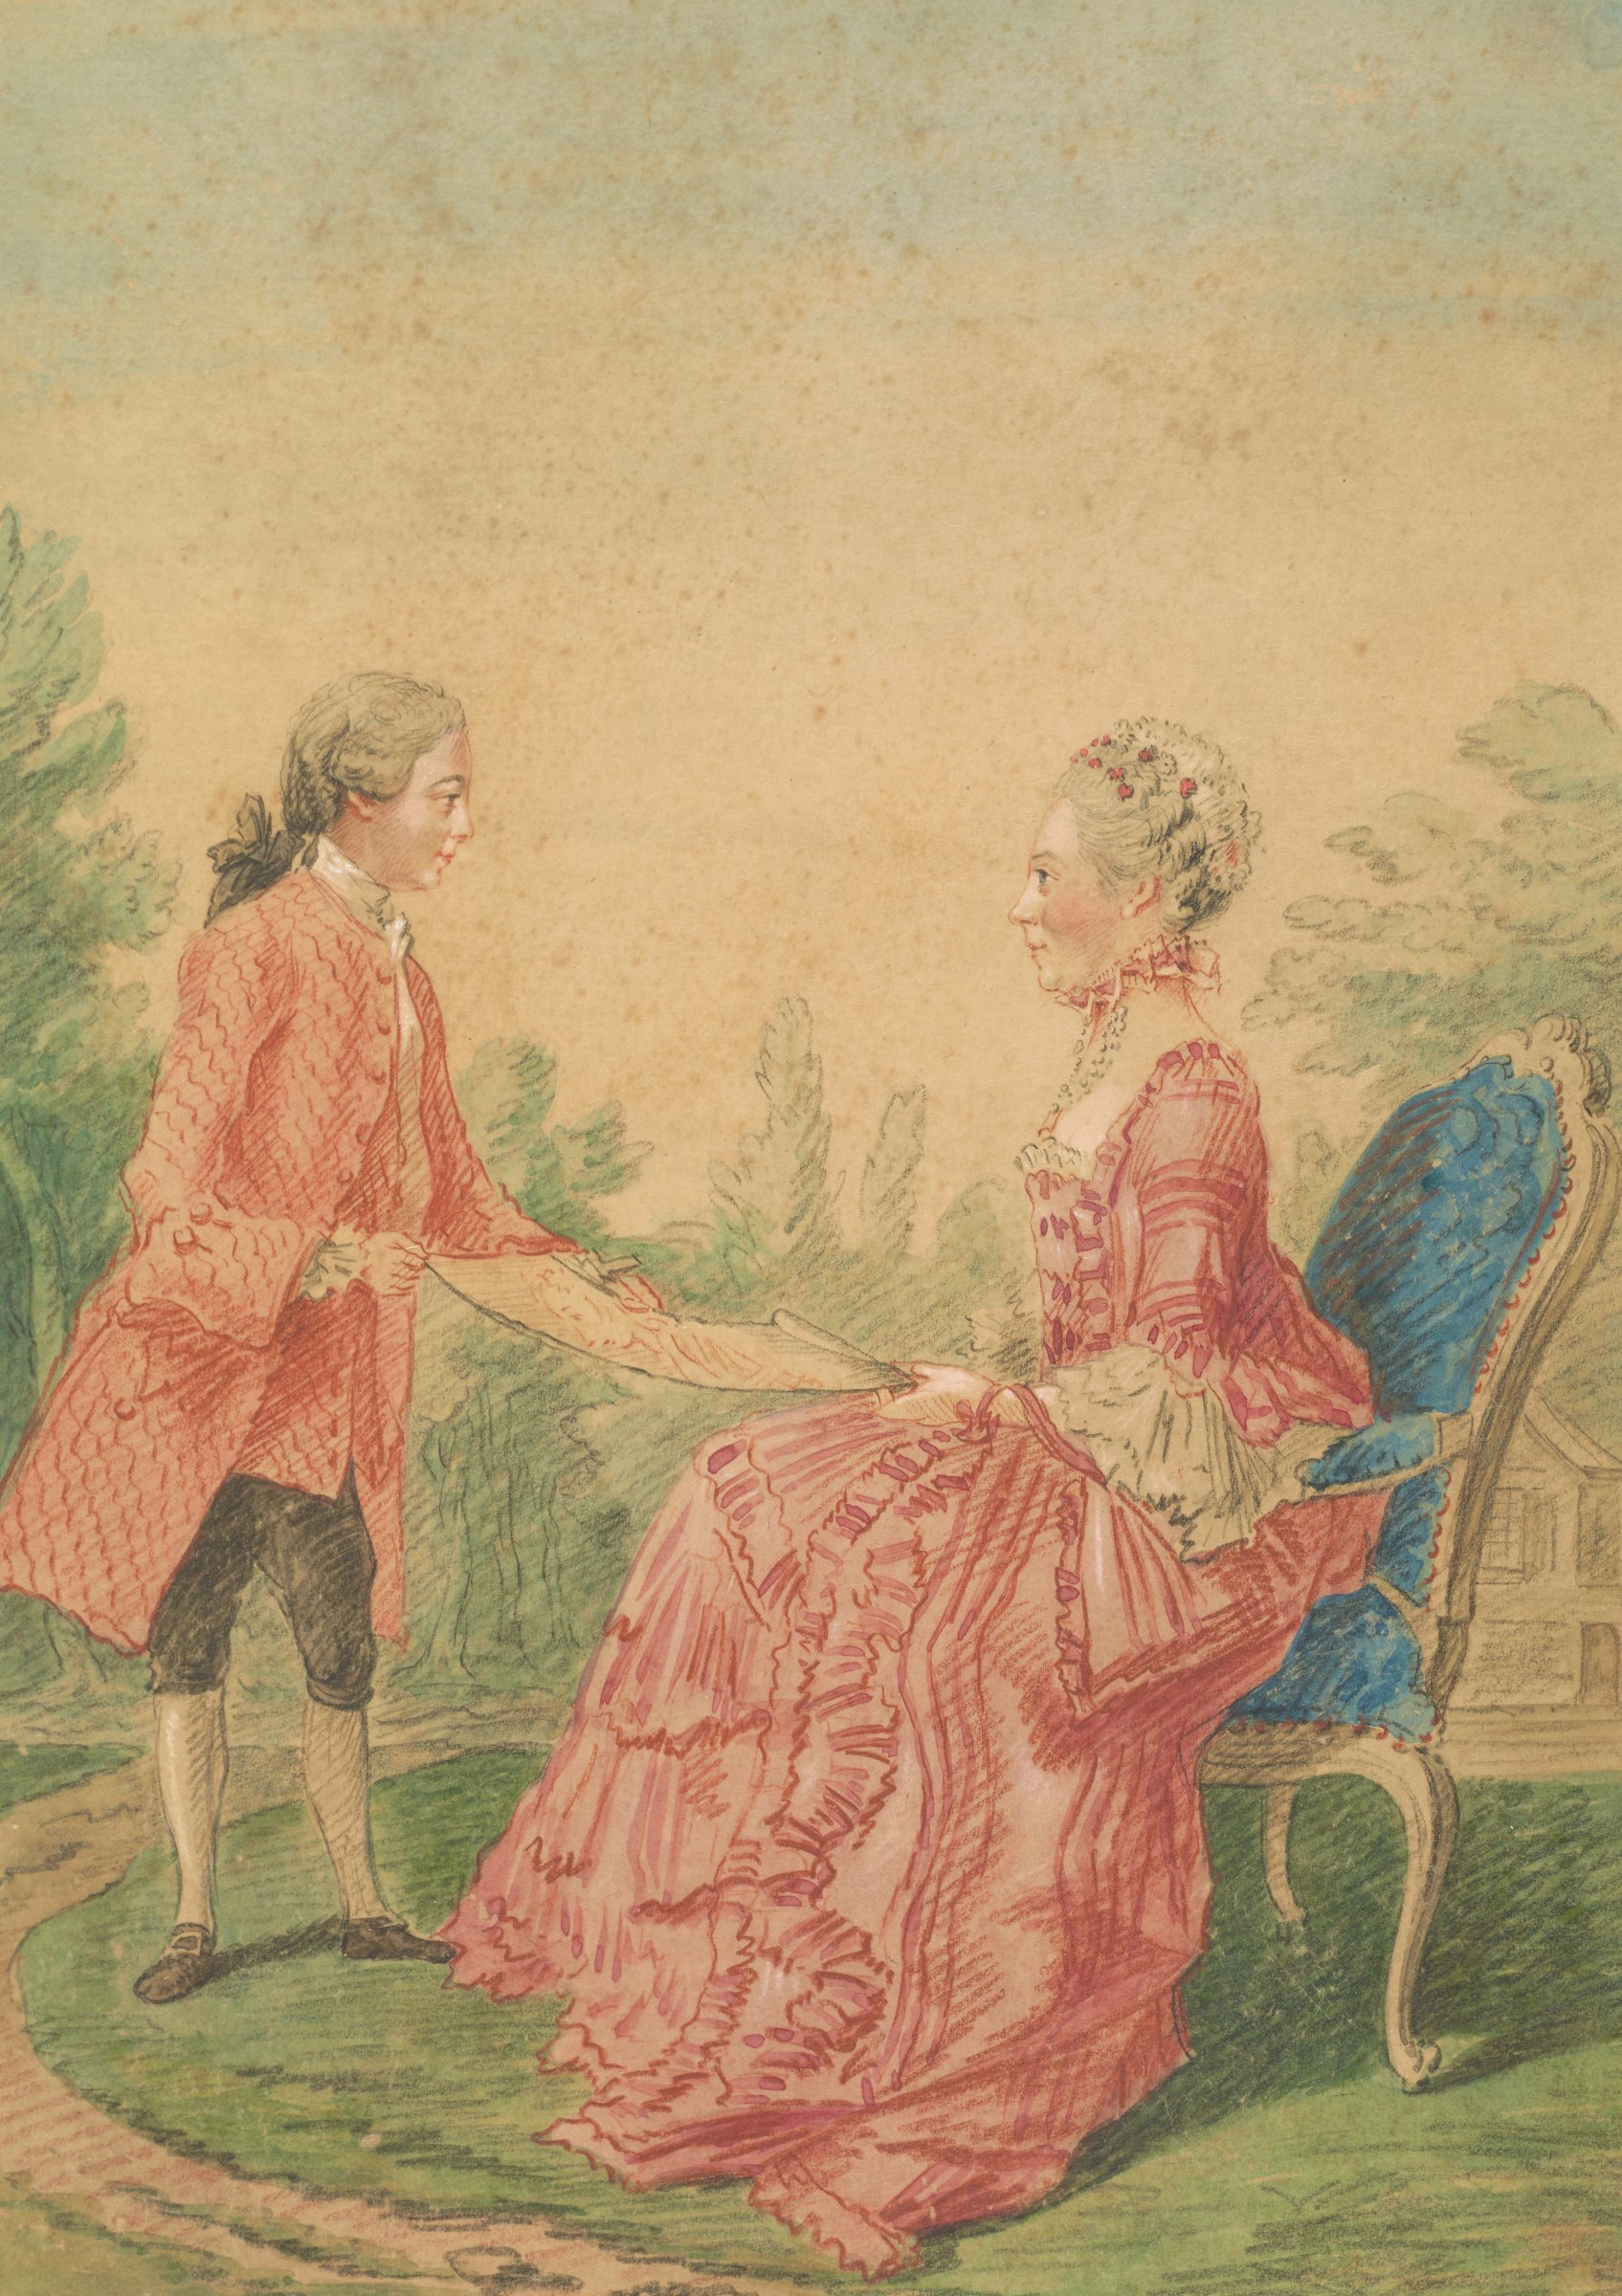 Seated woman in an elaborate pink dress, facing left. Standing before her, a youth hands her a portrait of a woman drawn in red chalk. They are outside; a building is glimpsed in the distance.